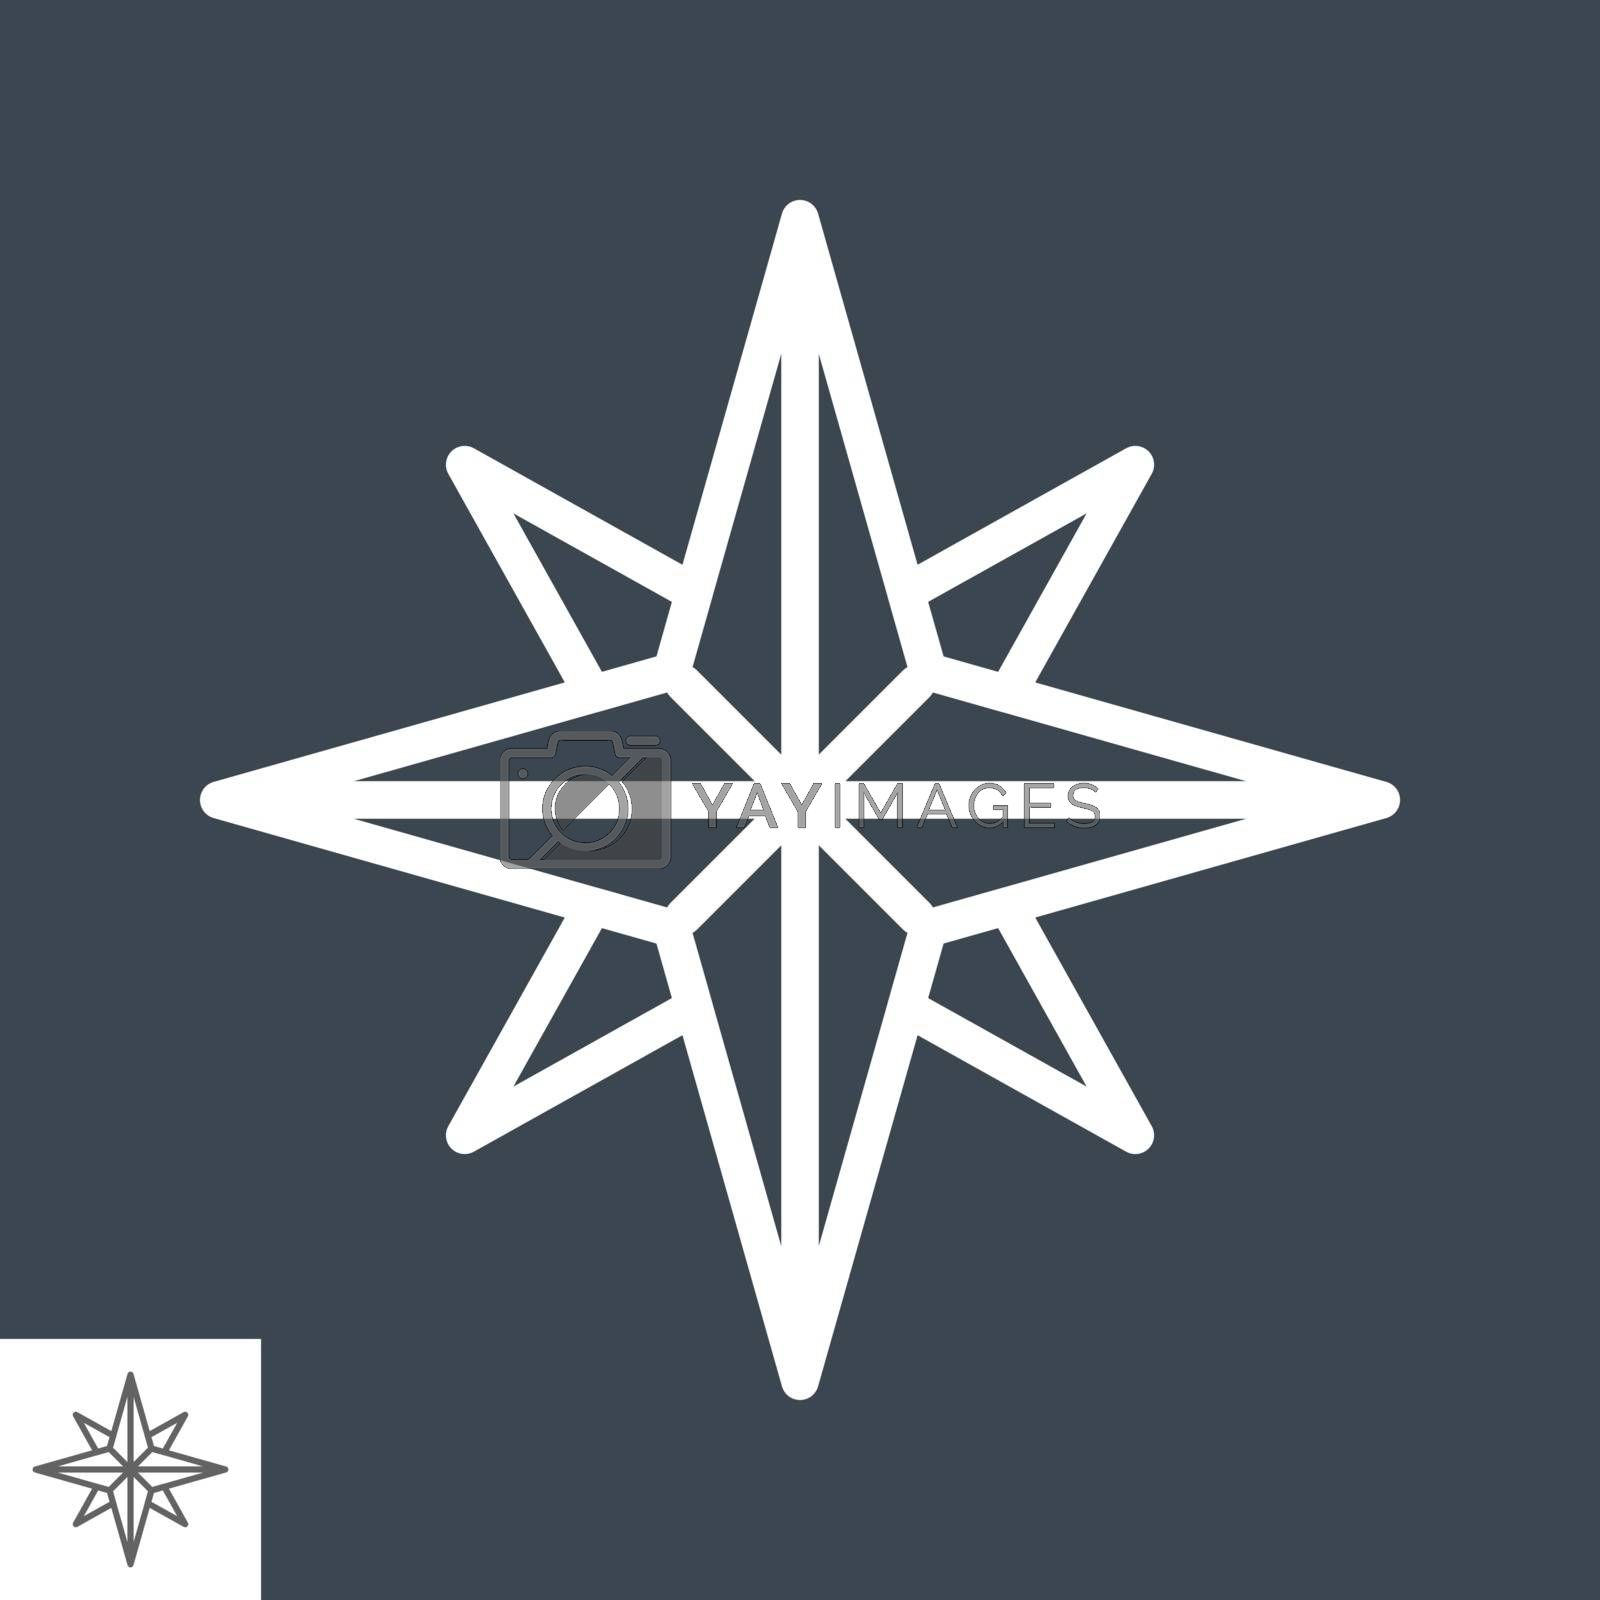 Wind Rose Thin Line Vector Icon Isolated on the Black Background.